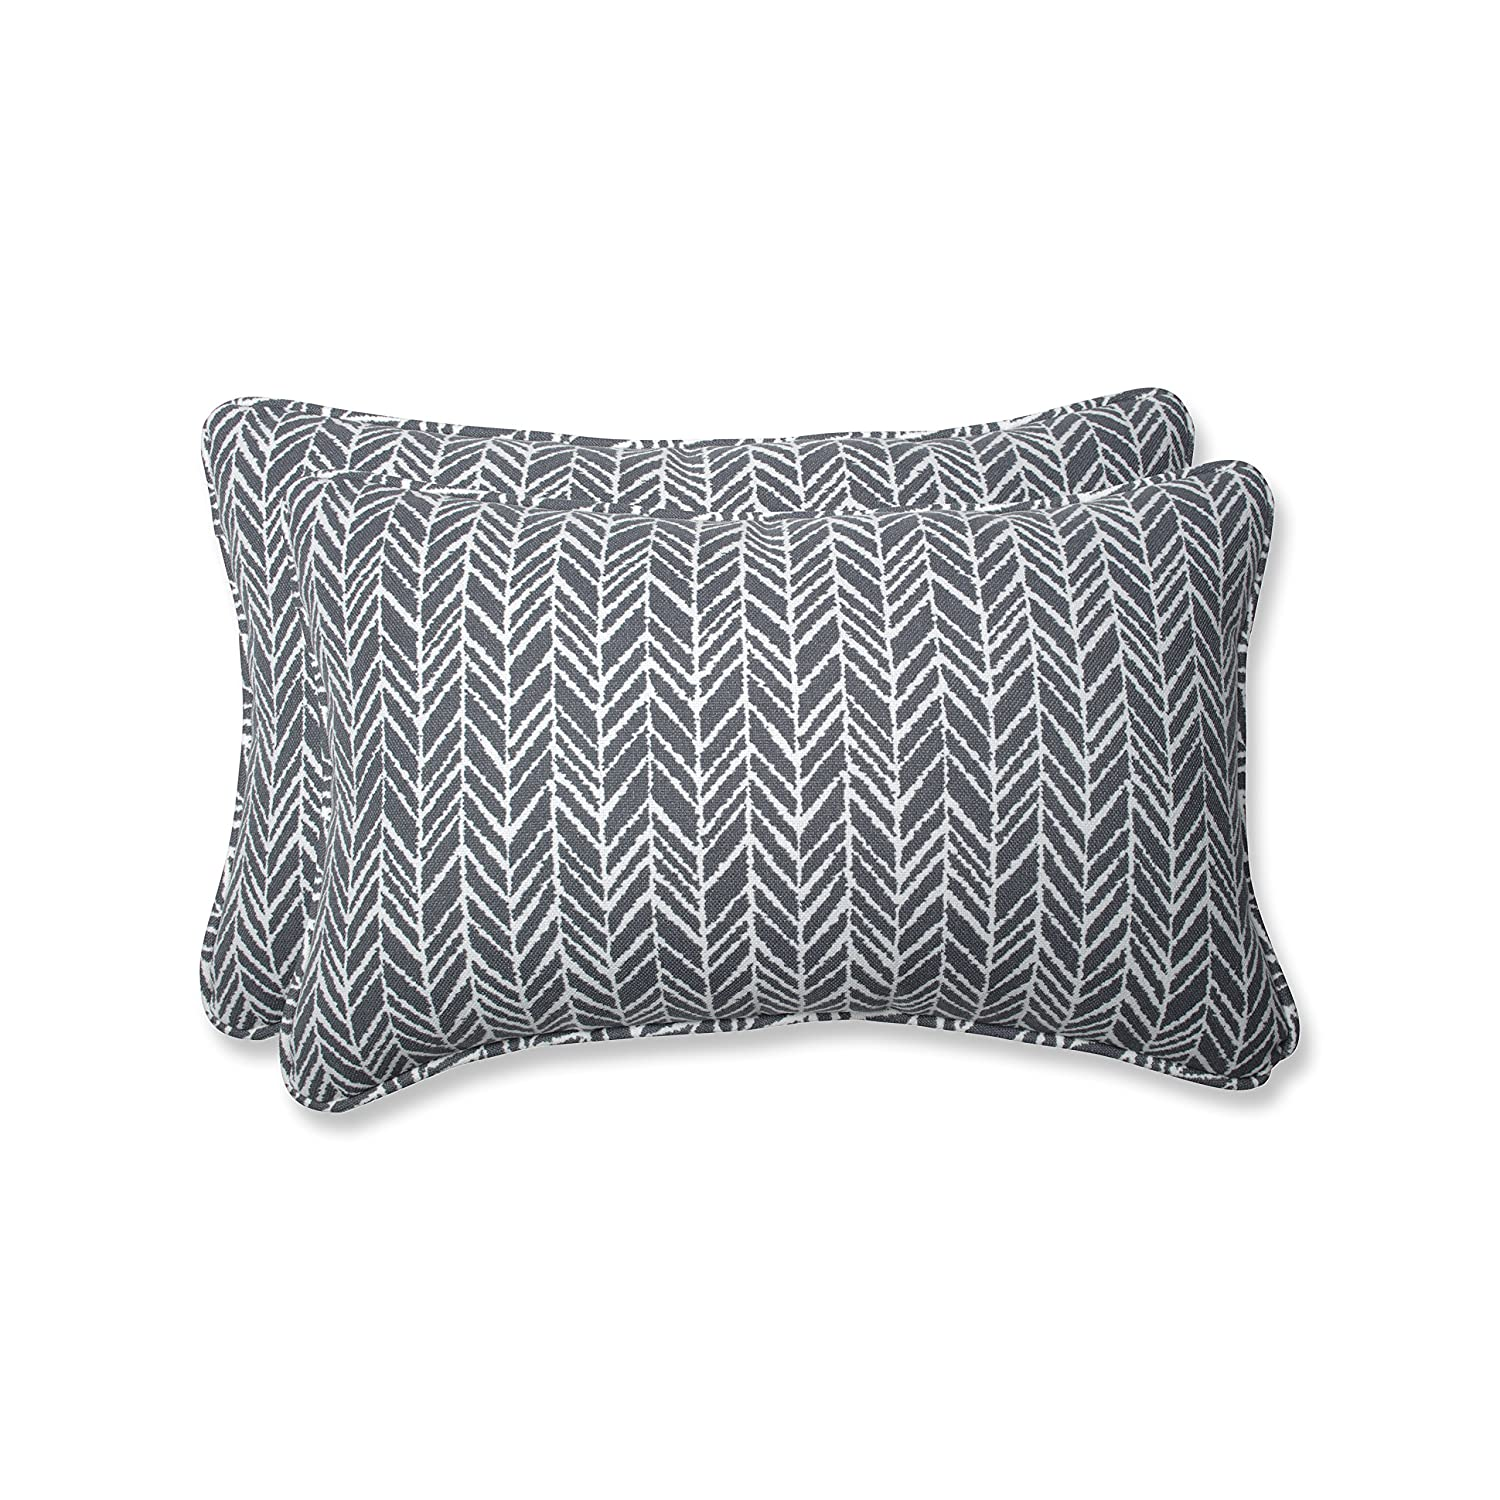 Pillow Perfect Outdoor Indoor Herringbone Slate Rectangular Throw Pillow Set of, 2 Piece